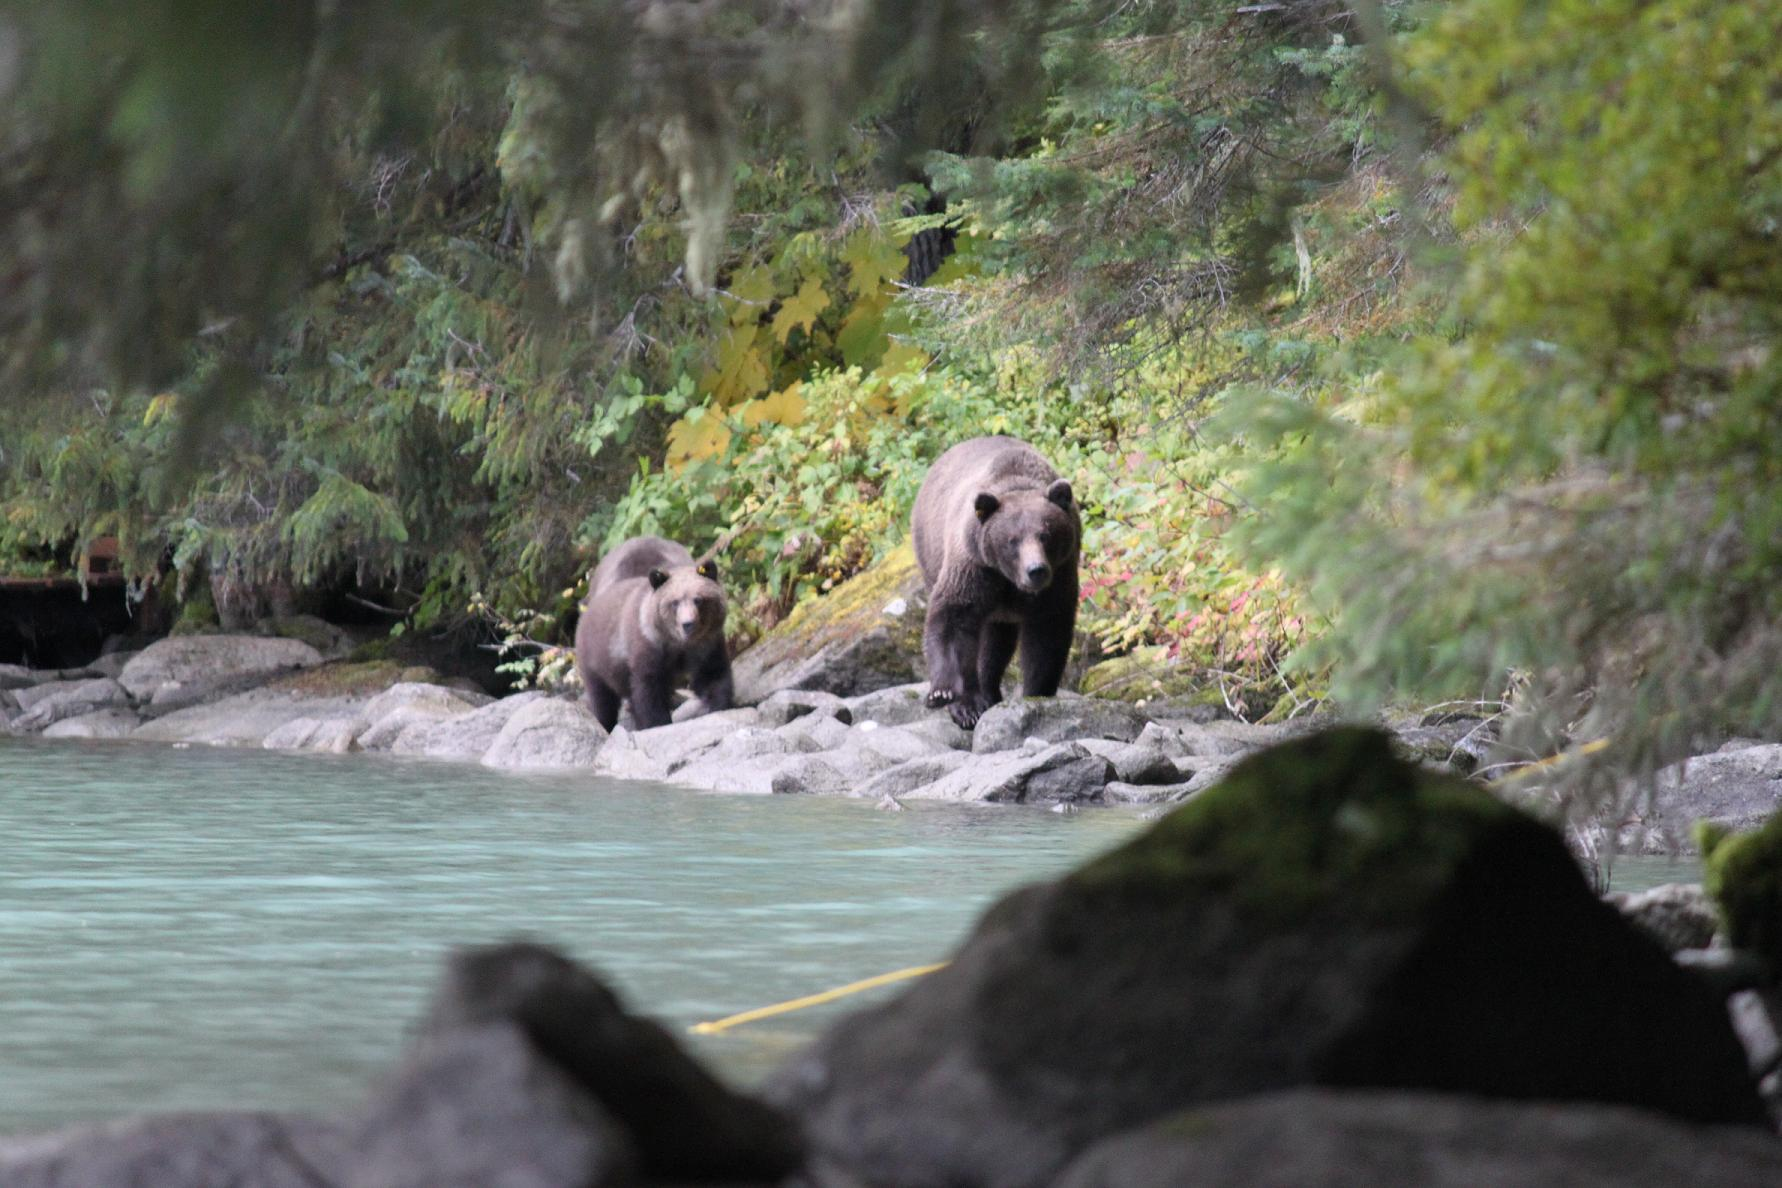 Grizzlies Headed for our Campsite